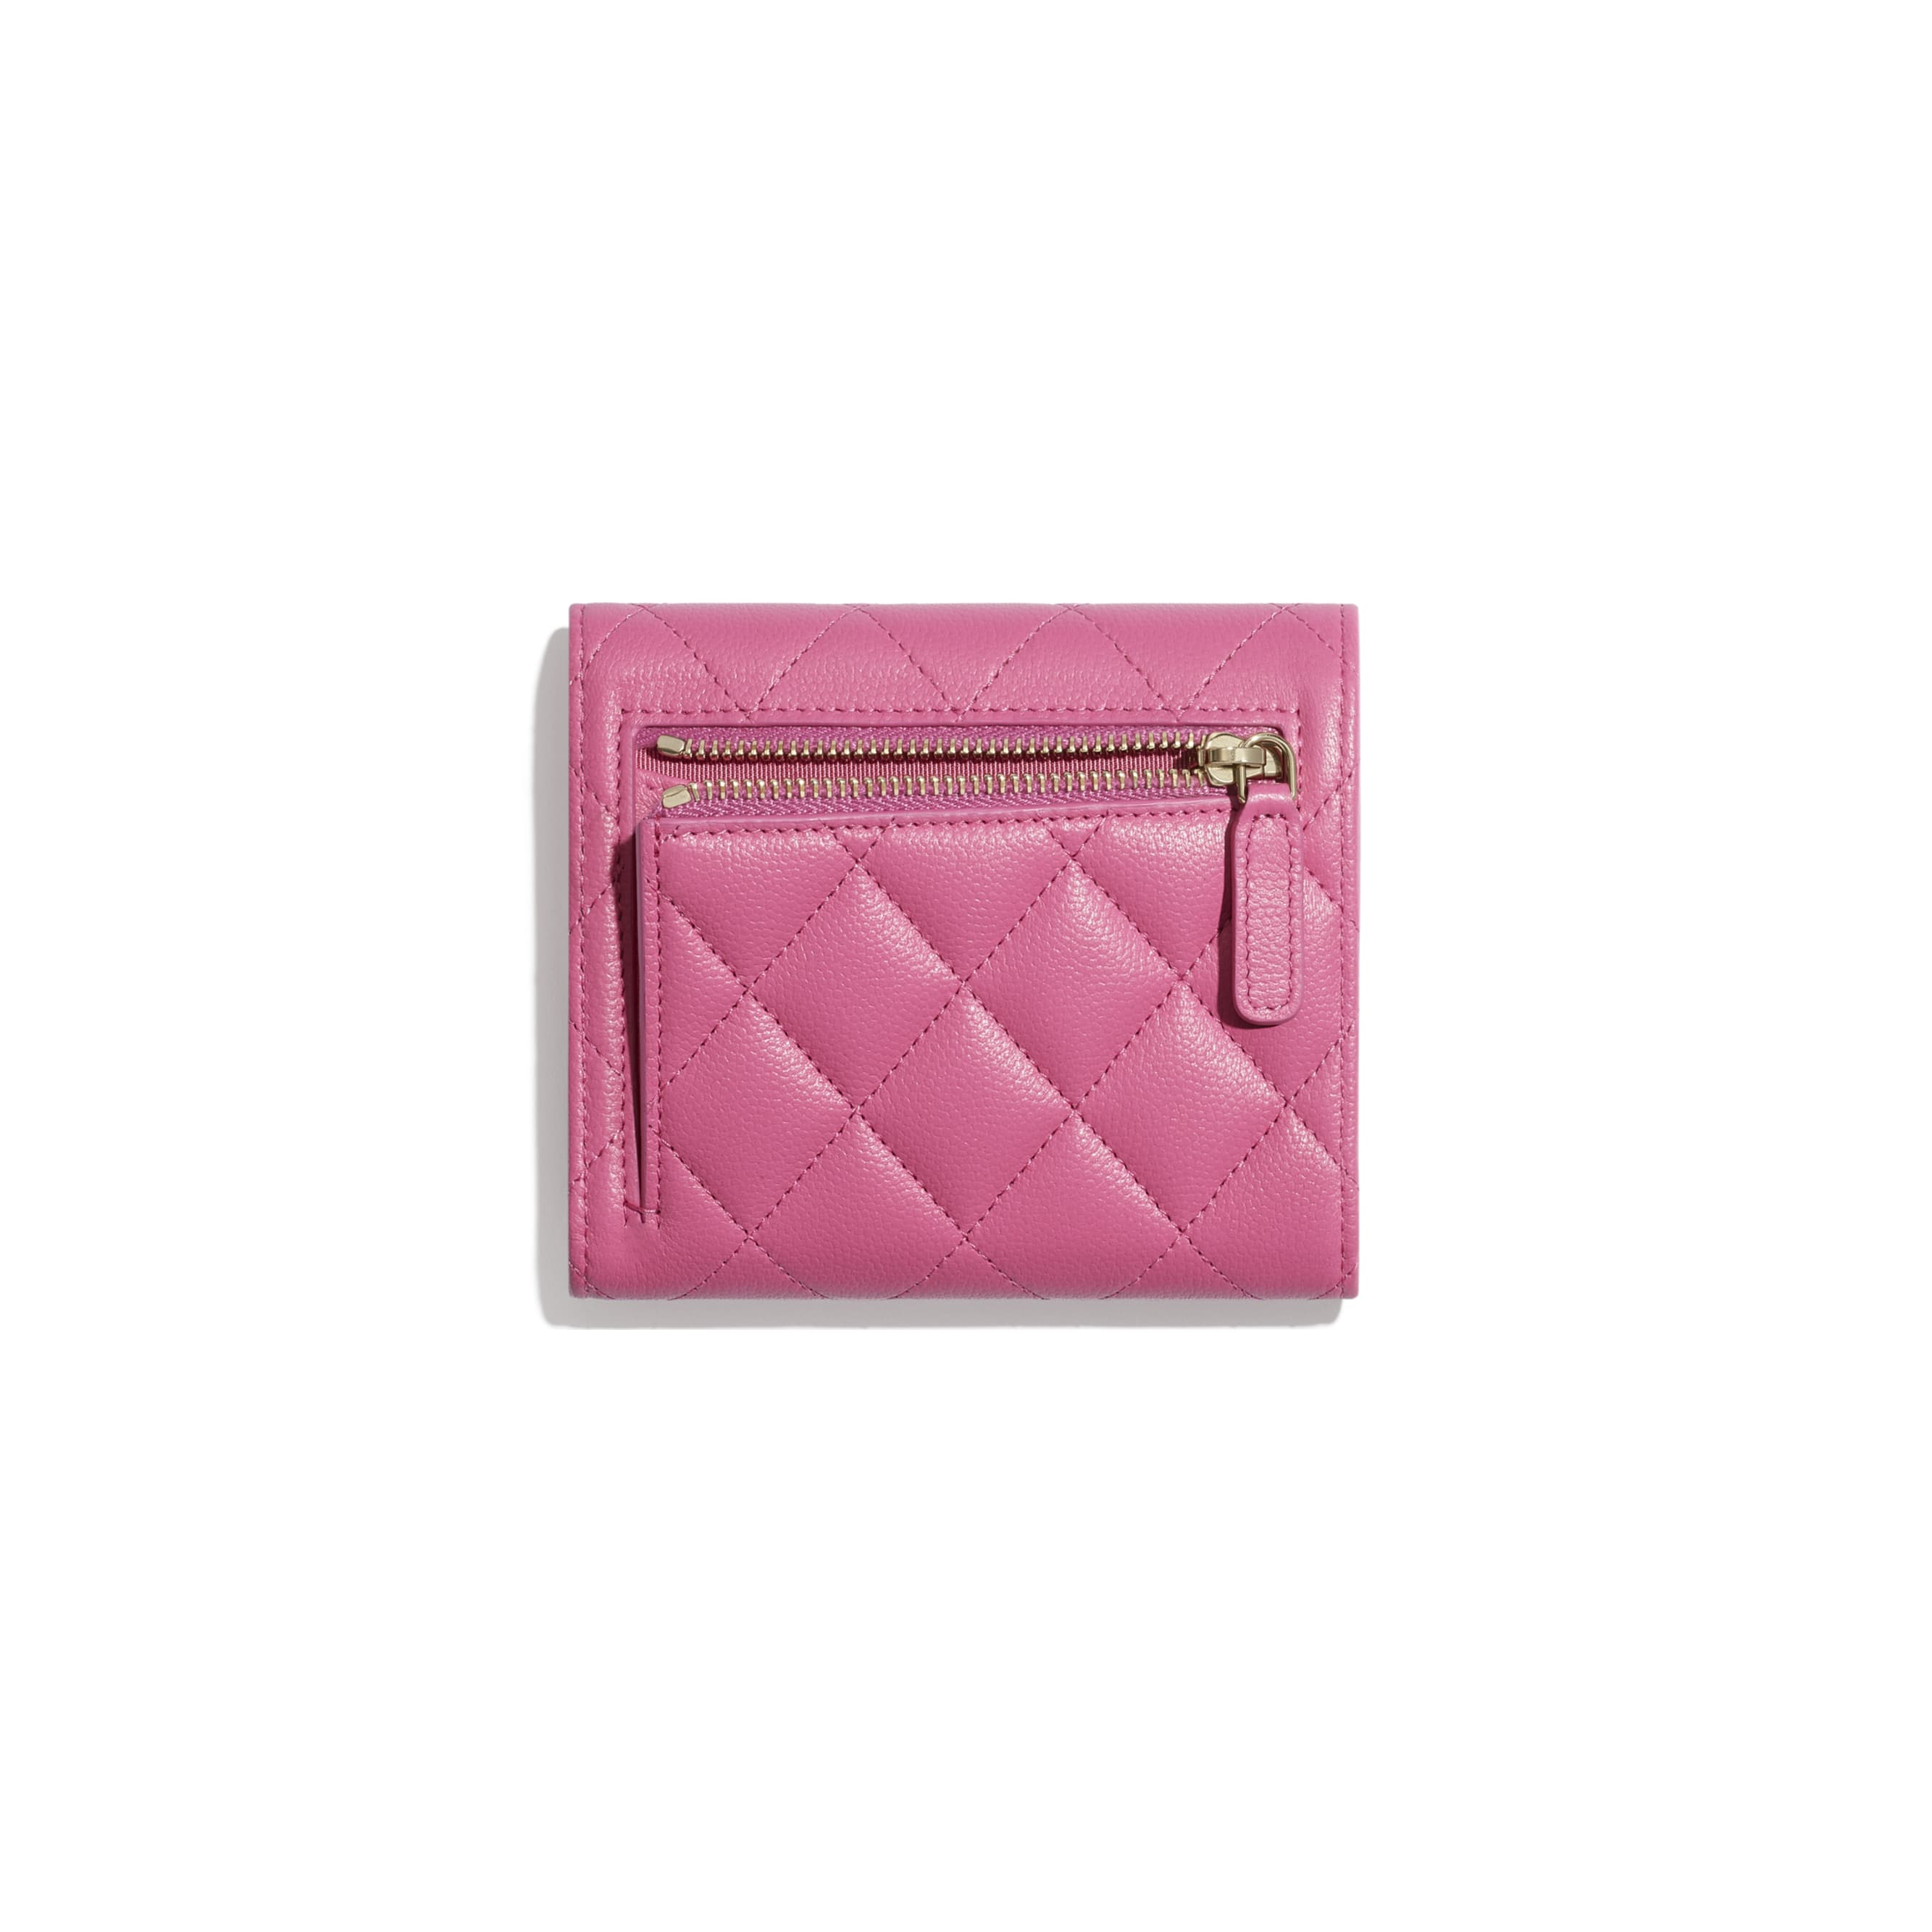 Classic Small Flap Wallet - Pink - Grained Shiny Calfskin & Gold-Tone Metal - CHANEL - Alternative view - see standard sized version